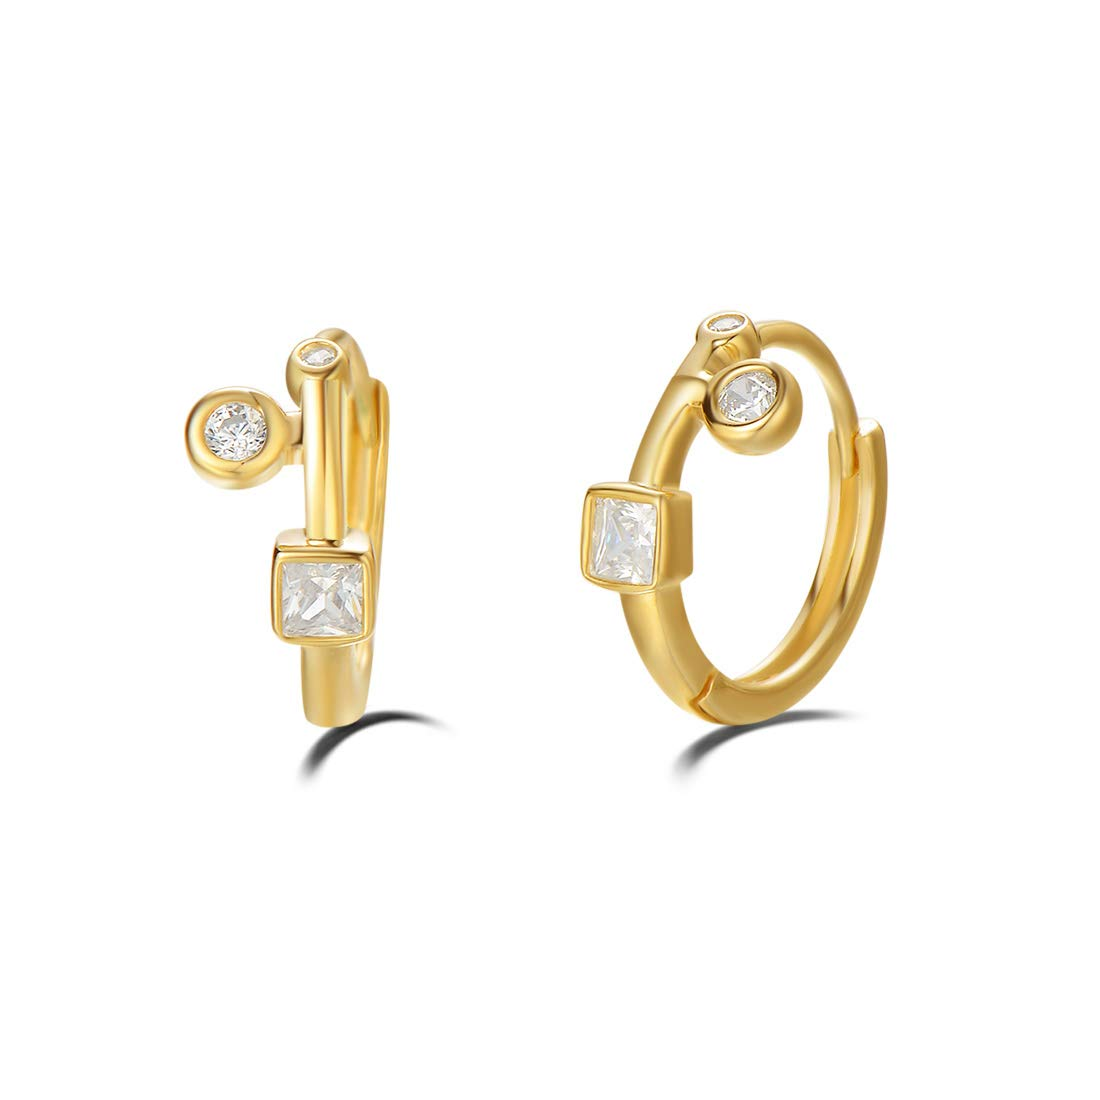 d083de014 Amazon.com: Carleen Yellow Gold Plated 925 Sterling Silver White Cubic  Zirconia CZ Huggie Hoop Earrings for Women Girls, 12mm: Home & Kitchen